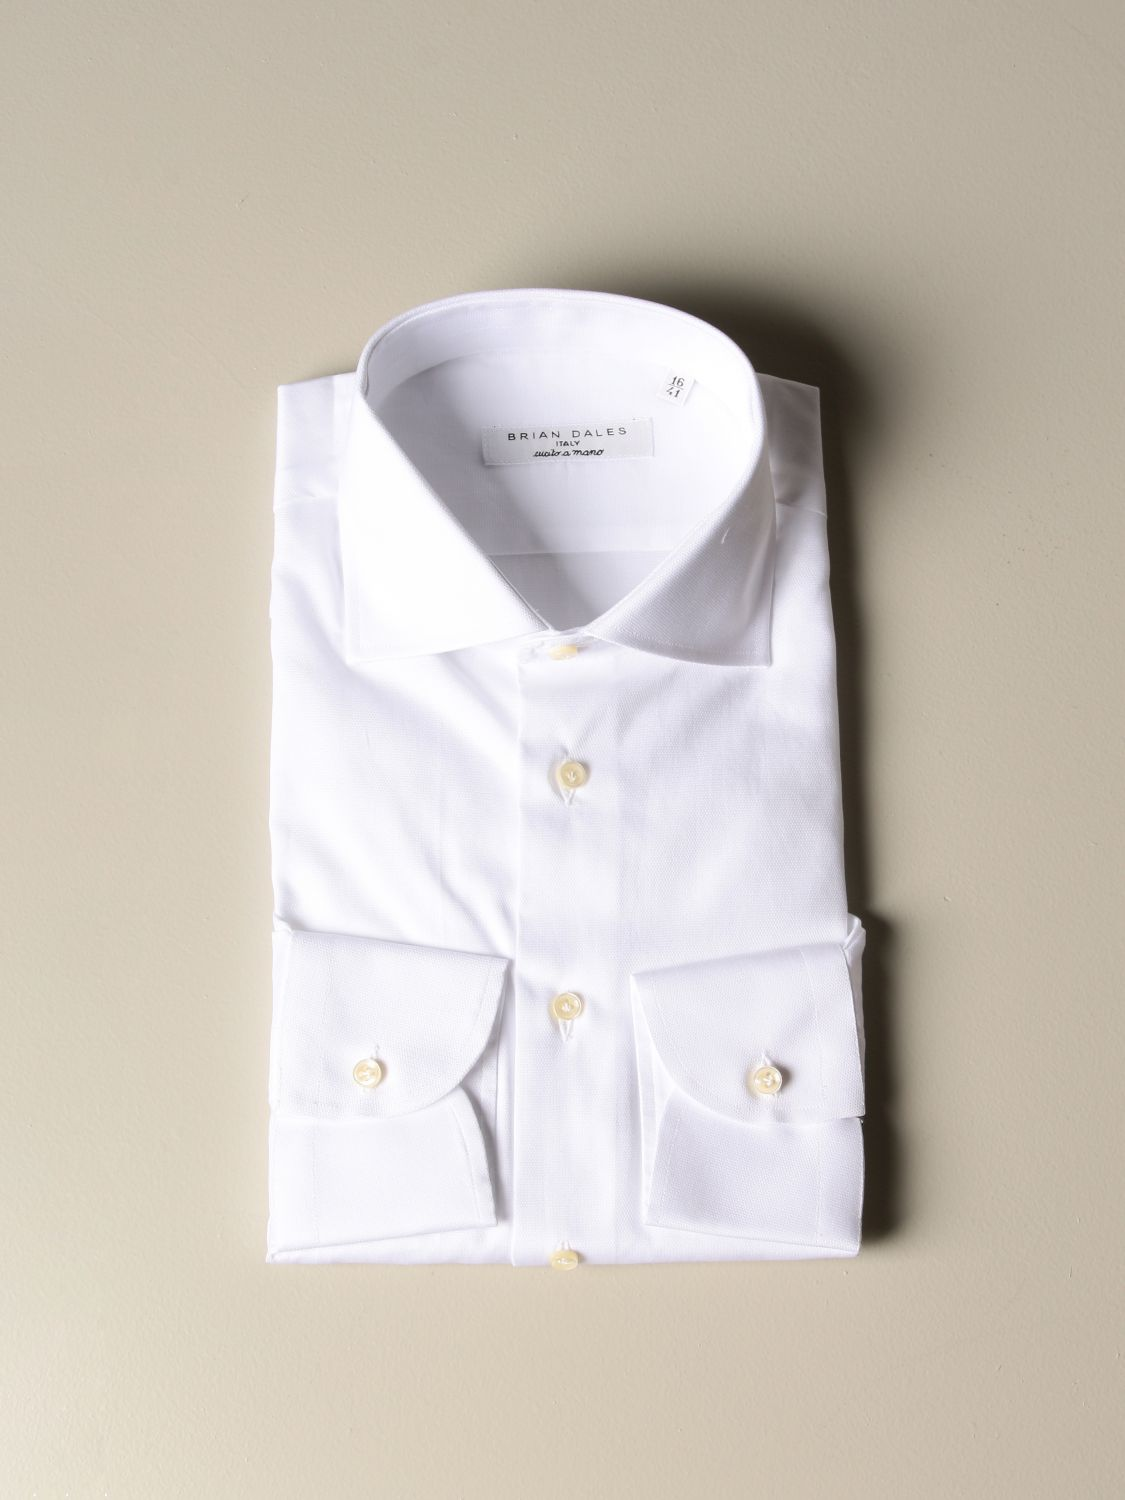 Shirt Brian Dales Camicie: Brian Dales Camicie tailored shirt in textured cotton with Italian collar white 1